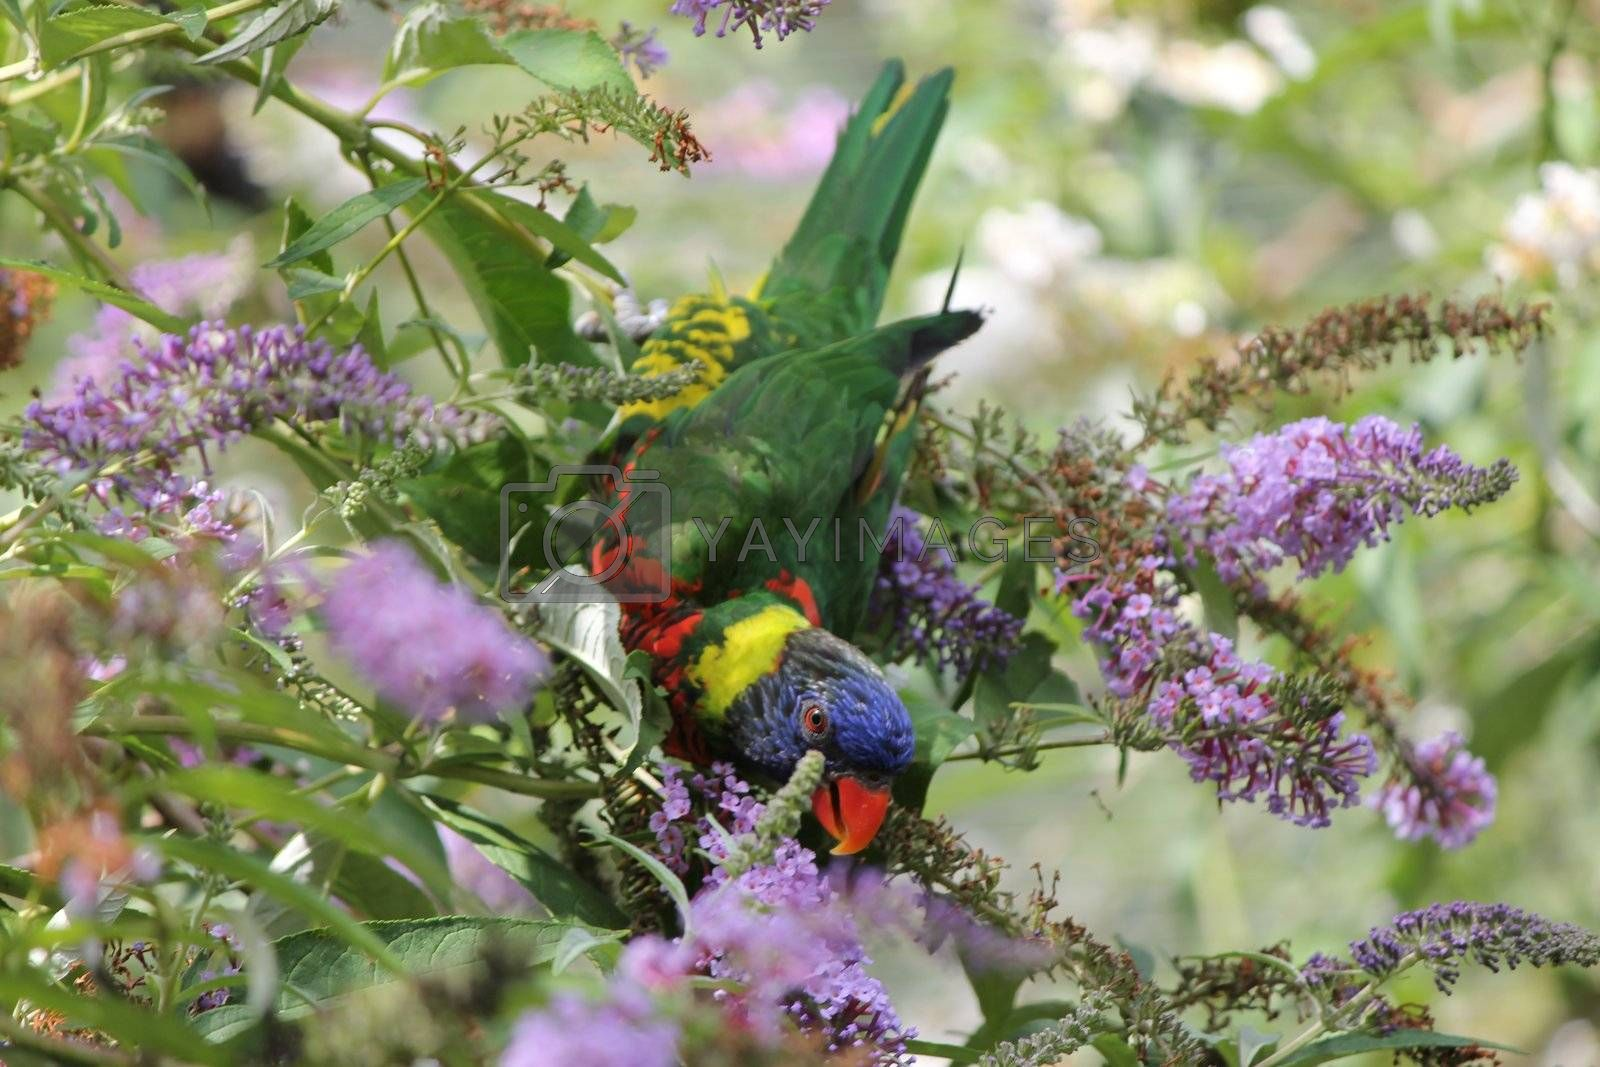 Royalty free image of parrot by mariephotos